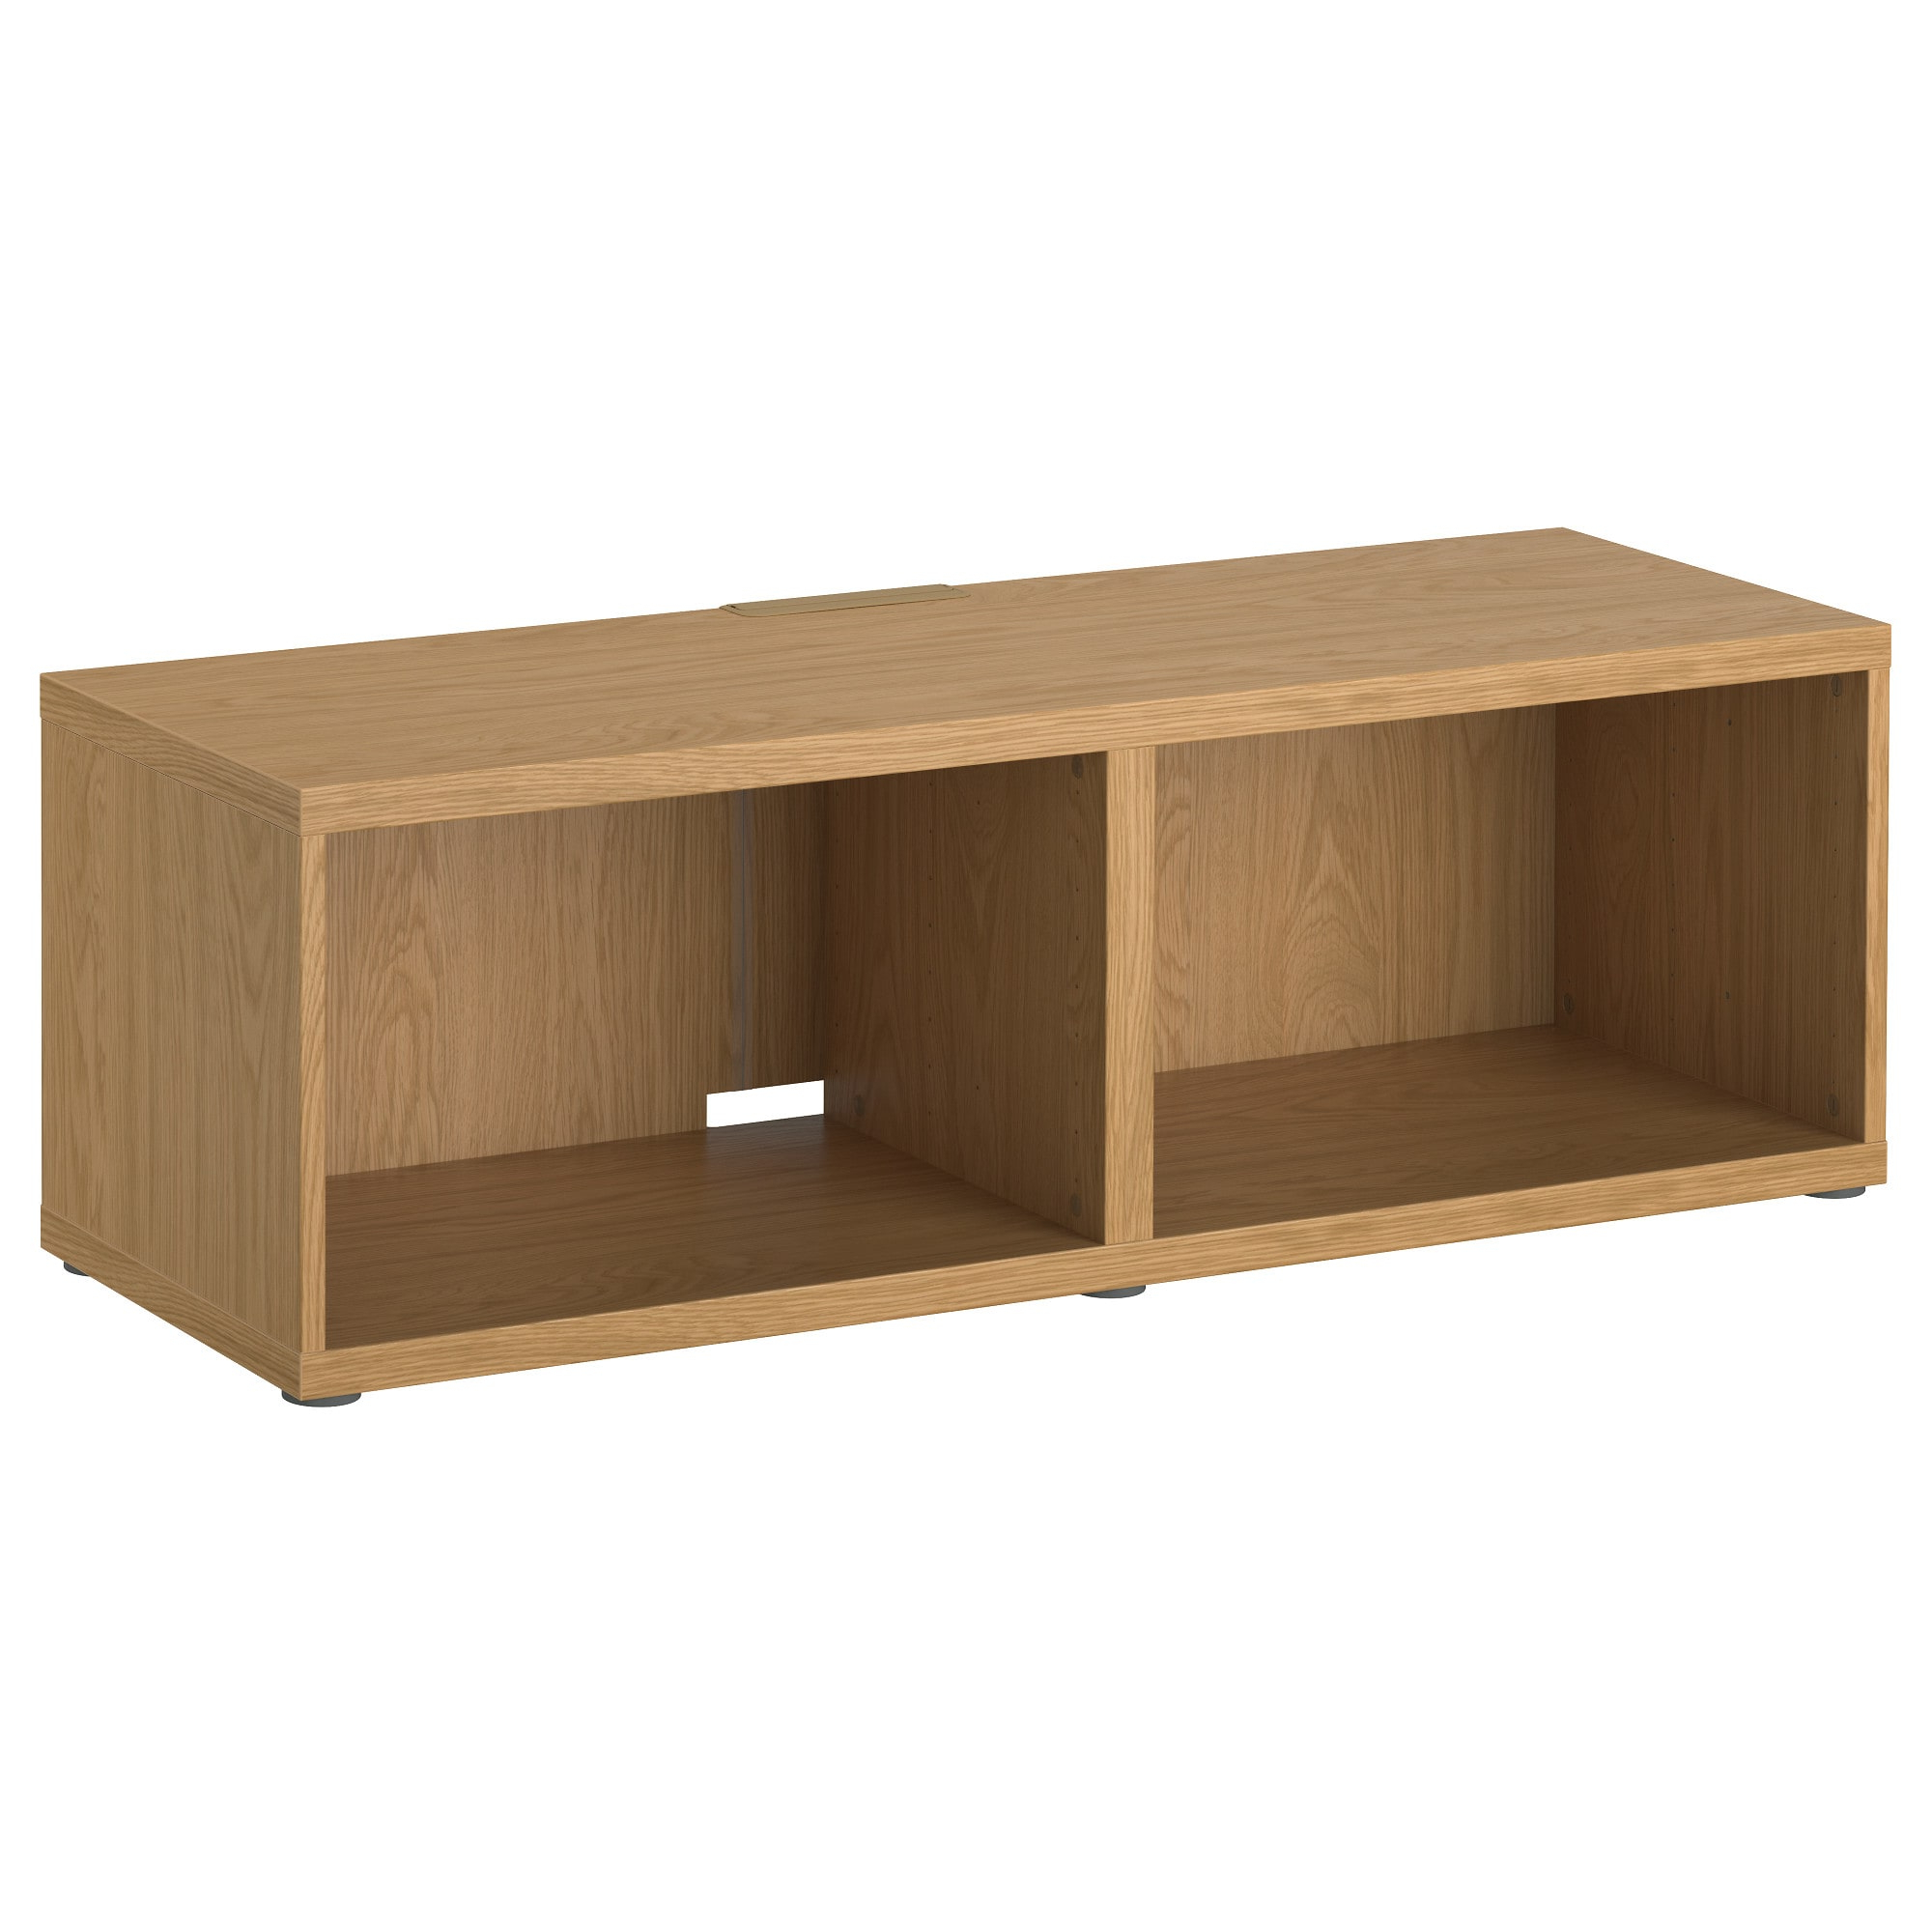 Most Current Bestå Tv Bench Oak Effect 120 X 40 X 38 Cm – Ikea With Bench Tv Stands (View 14 of 20)